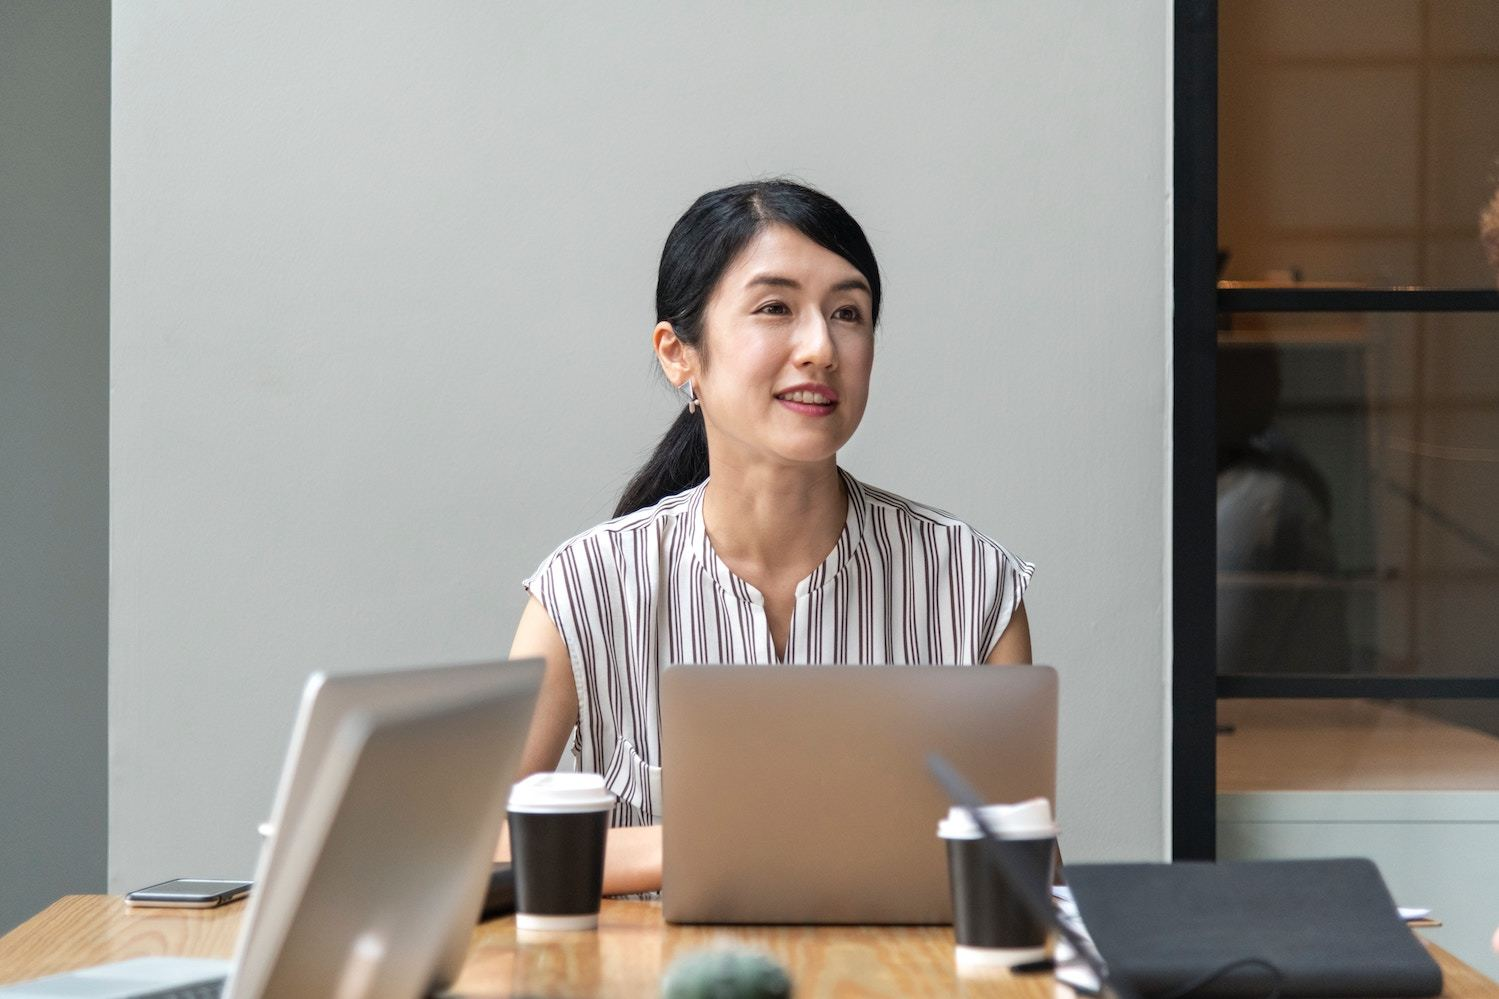 Woman presents at business meeting